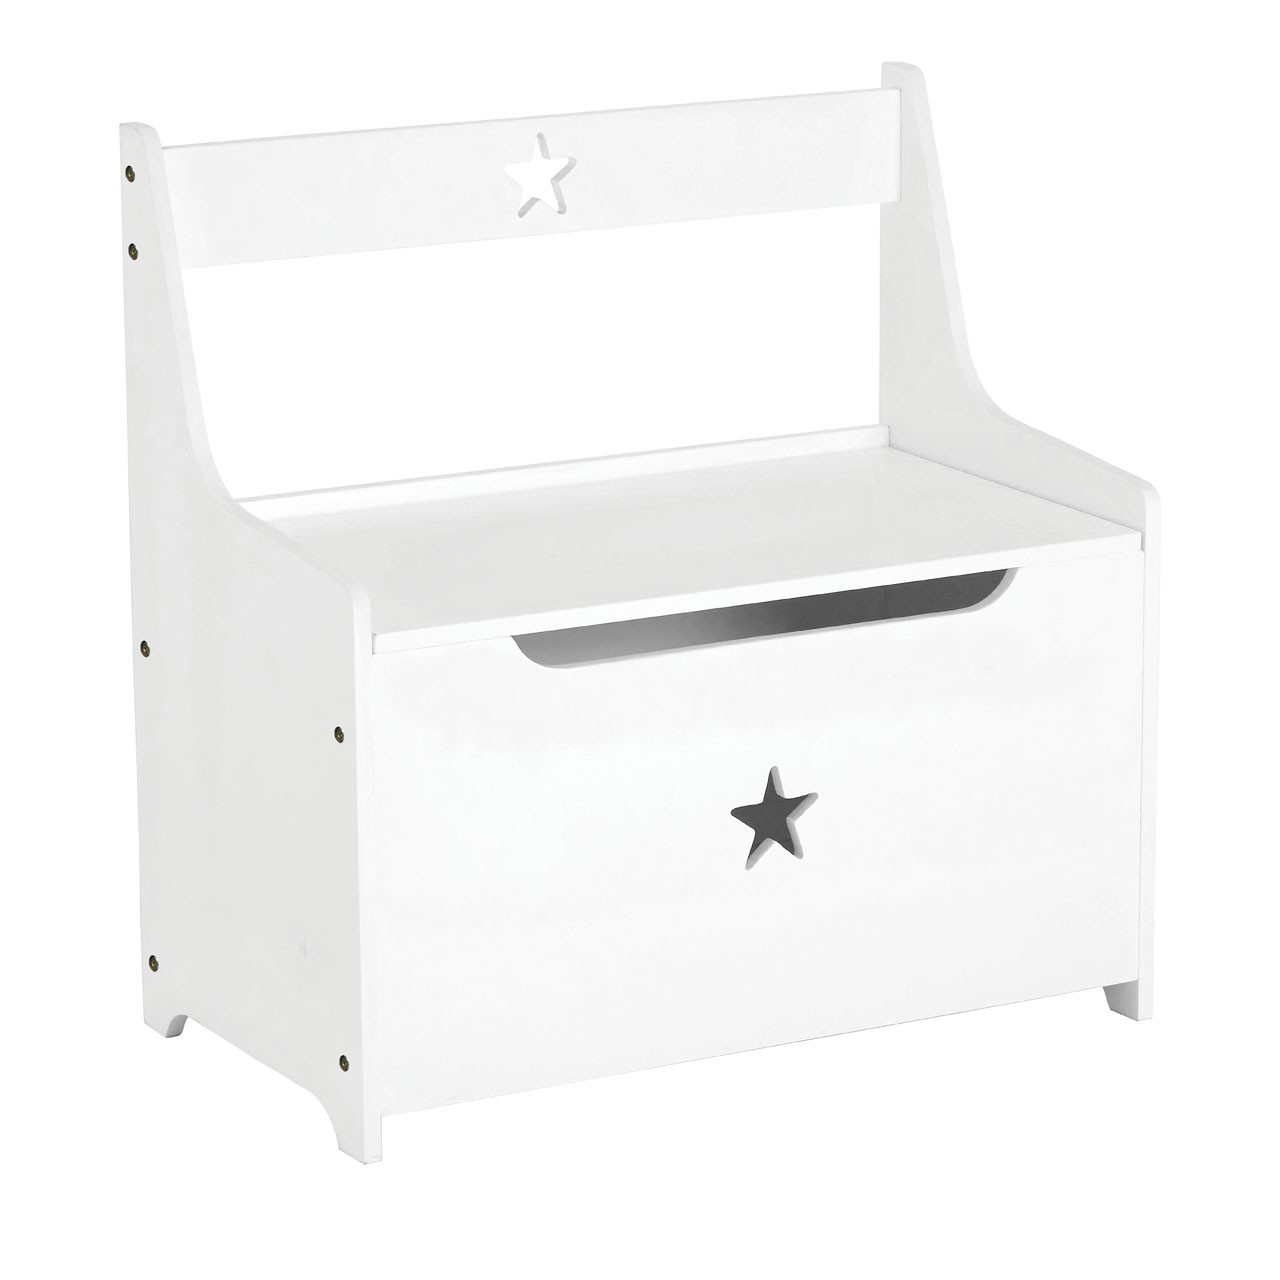 Prime Furnishing Star Design Kids Storage Box, MDF - White